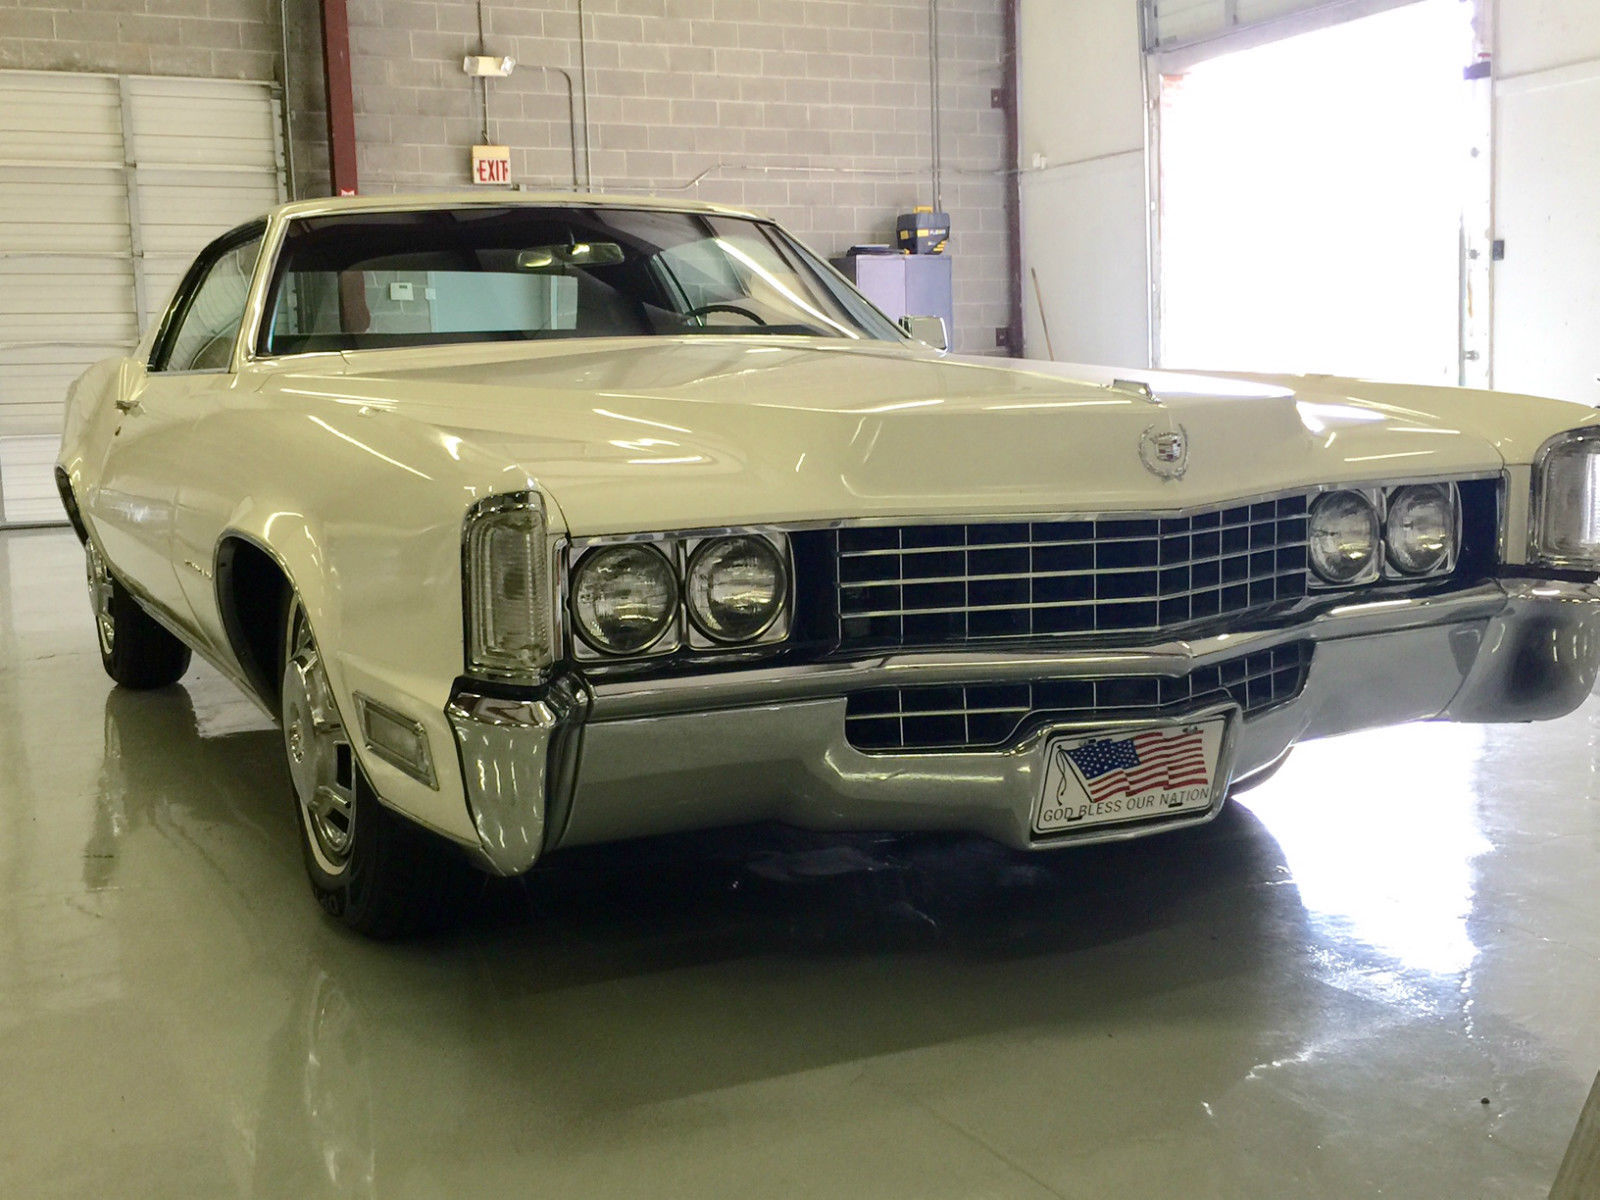 1968 cadillac eldorado 472 engine two owner car 78 543 original miles classic cadillac. Black Bedroom Furniture Sets. Home Design Ideas